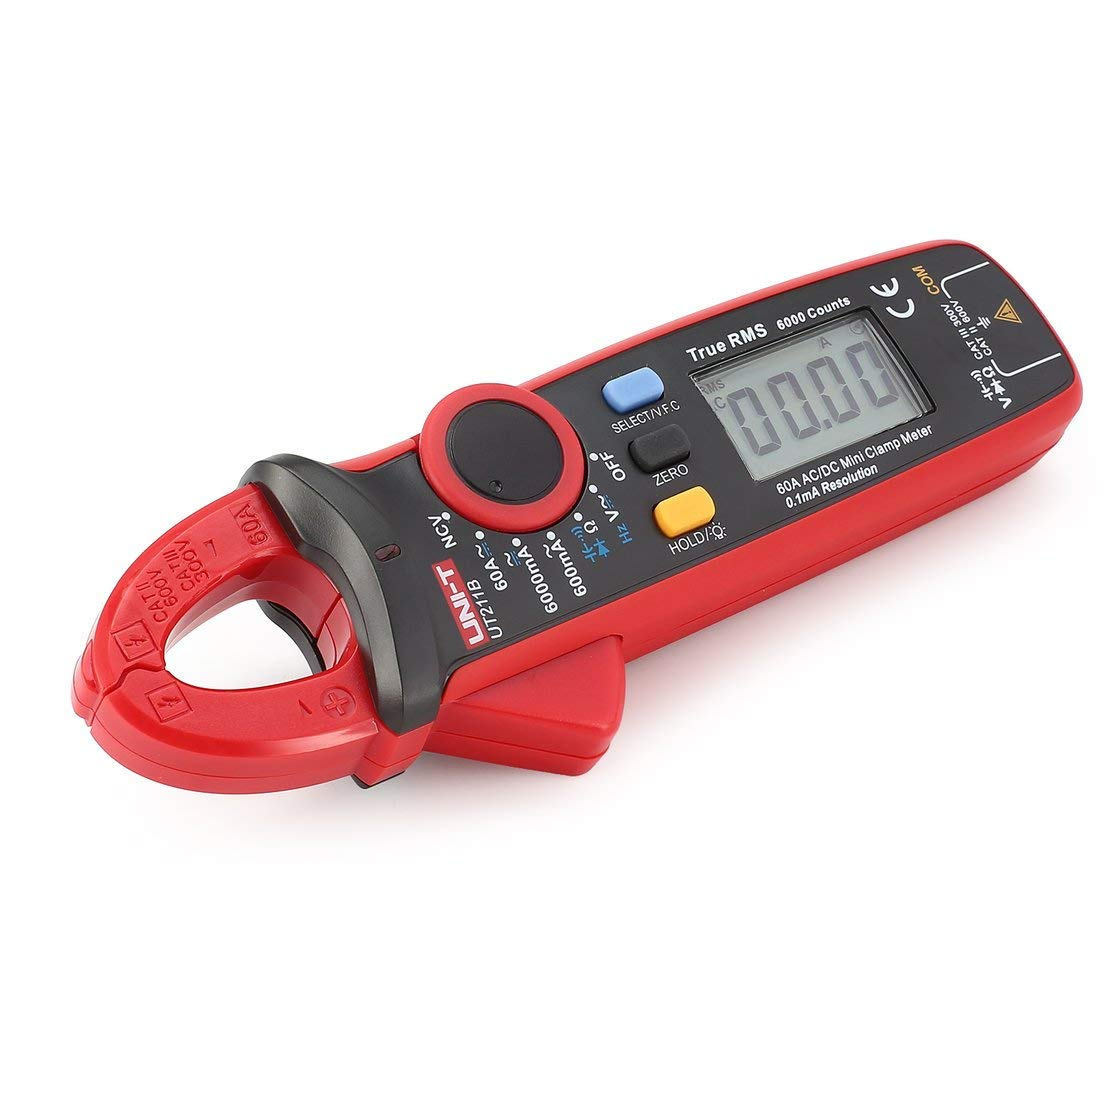 UNI-T UT211B Mini Digital Clamp Meter Multimeter True RMS Alta Resolució n AC/DC Volt Amp Ohm Capacitancy Diode Tester Laurelmartina